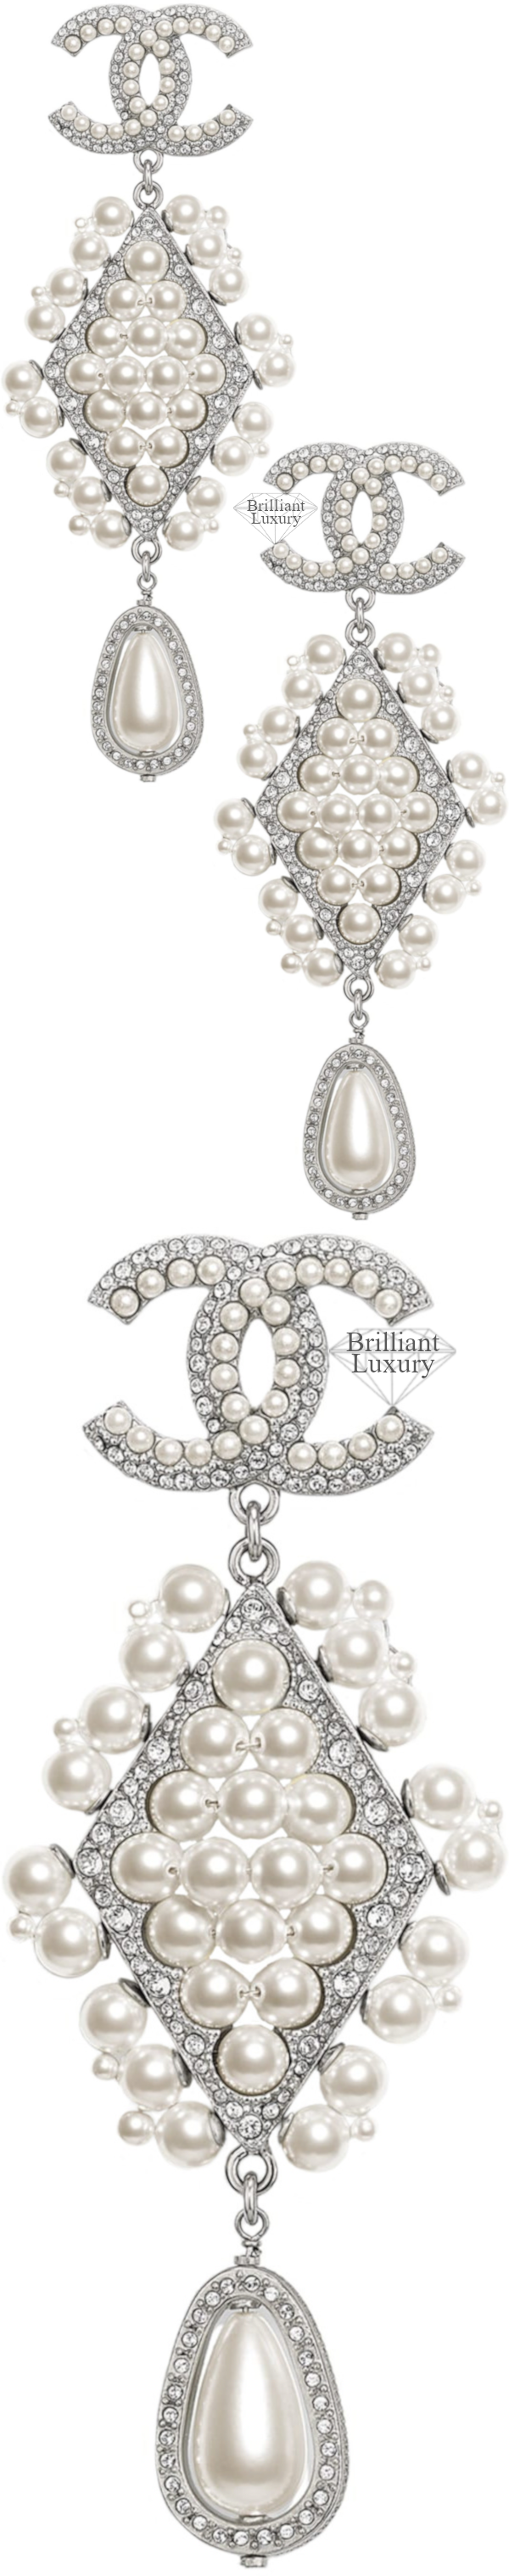 CHANEL Costume Jewelry II Silver Pearl Strass Clip-On Earrings #jewelry